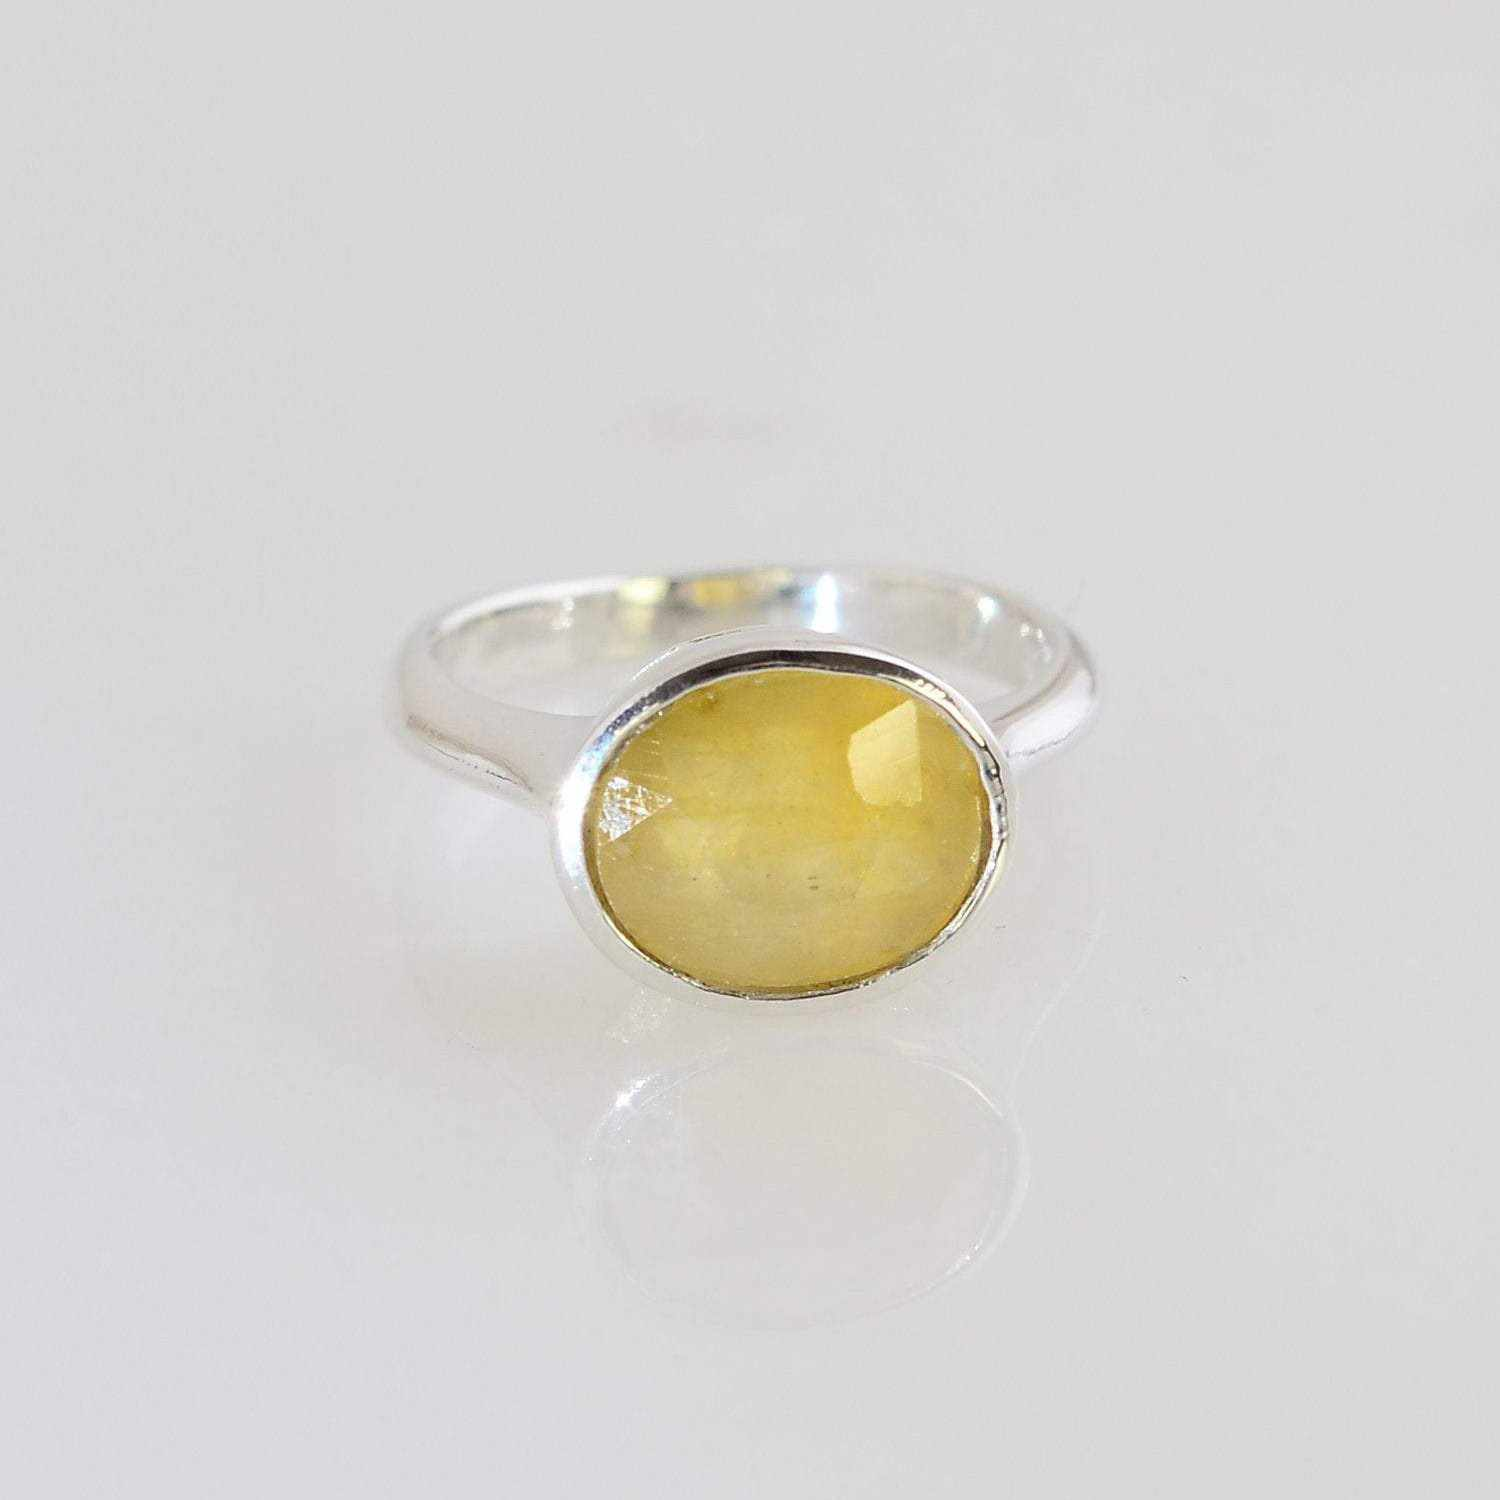 Yellow Sapphire Ring - Gems Ring - Statement Ring - Gold Ring - Oval cut Ring - Custom Design ring - Genuine Sapphire